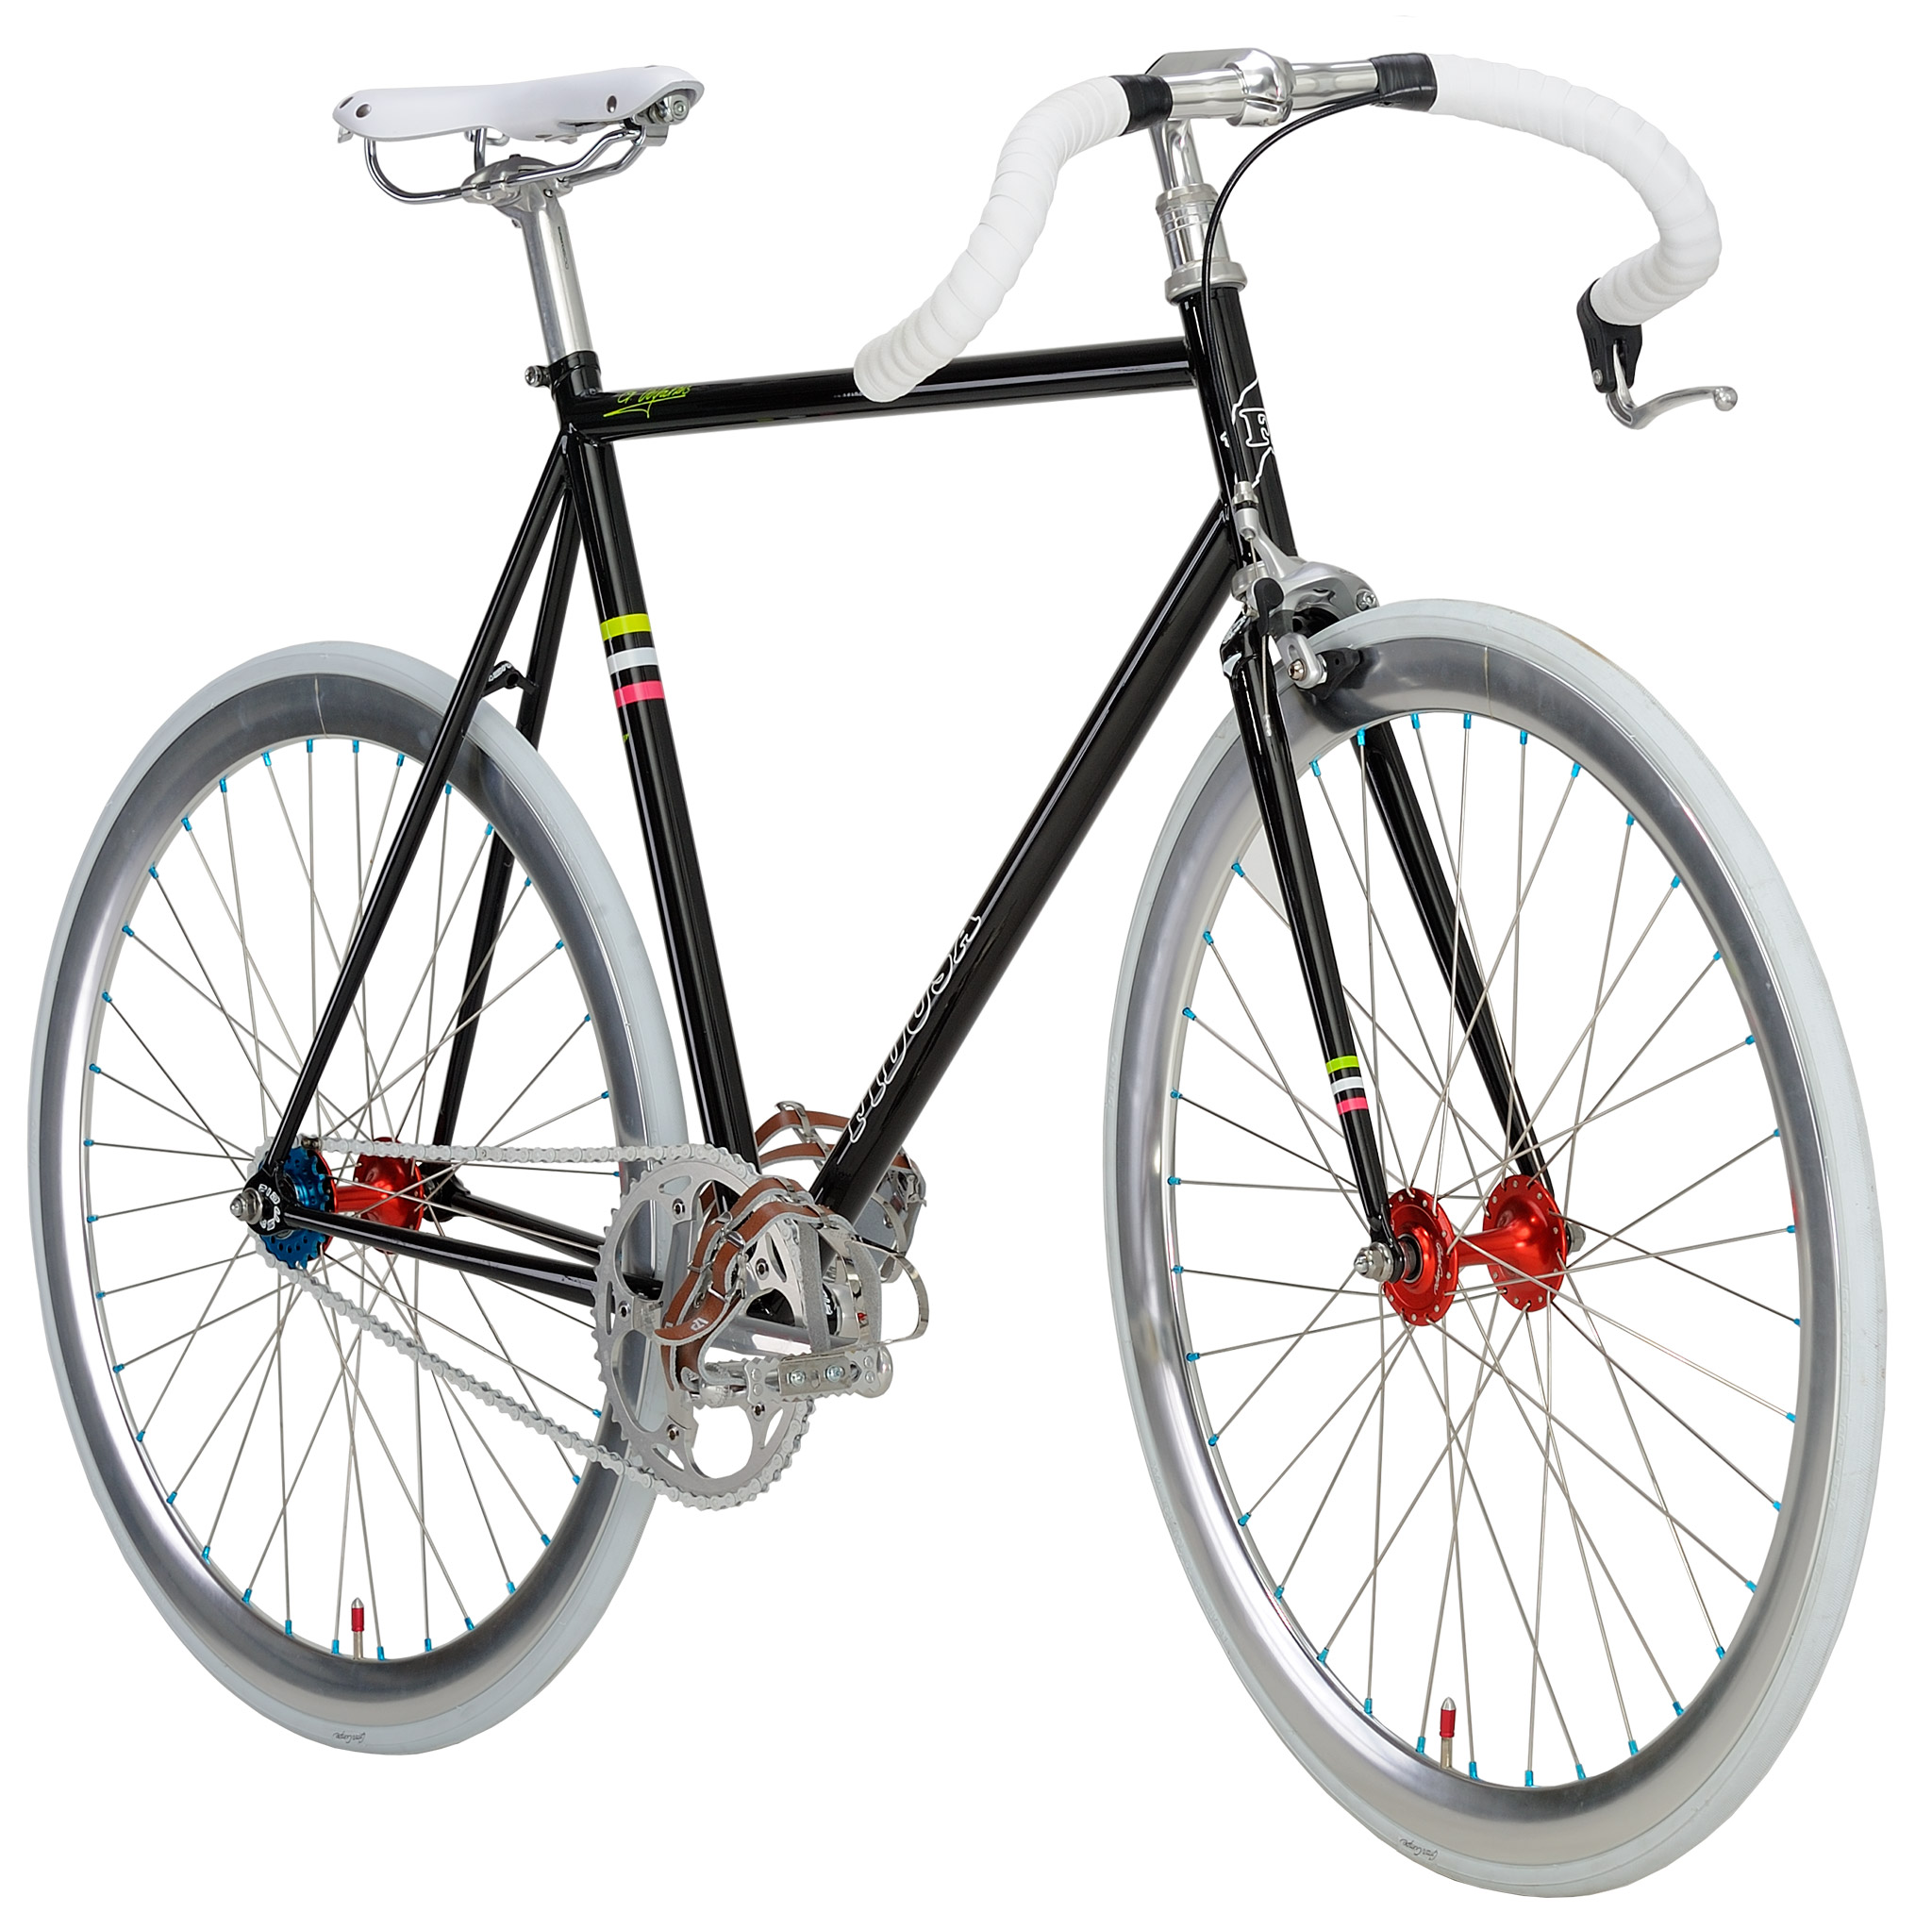 Fidusa-Cro-Mo-Single-Speed-Bicycle-5 Ποδήλατα